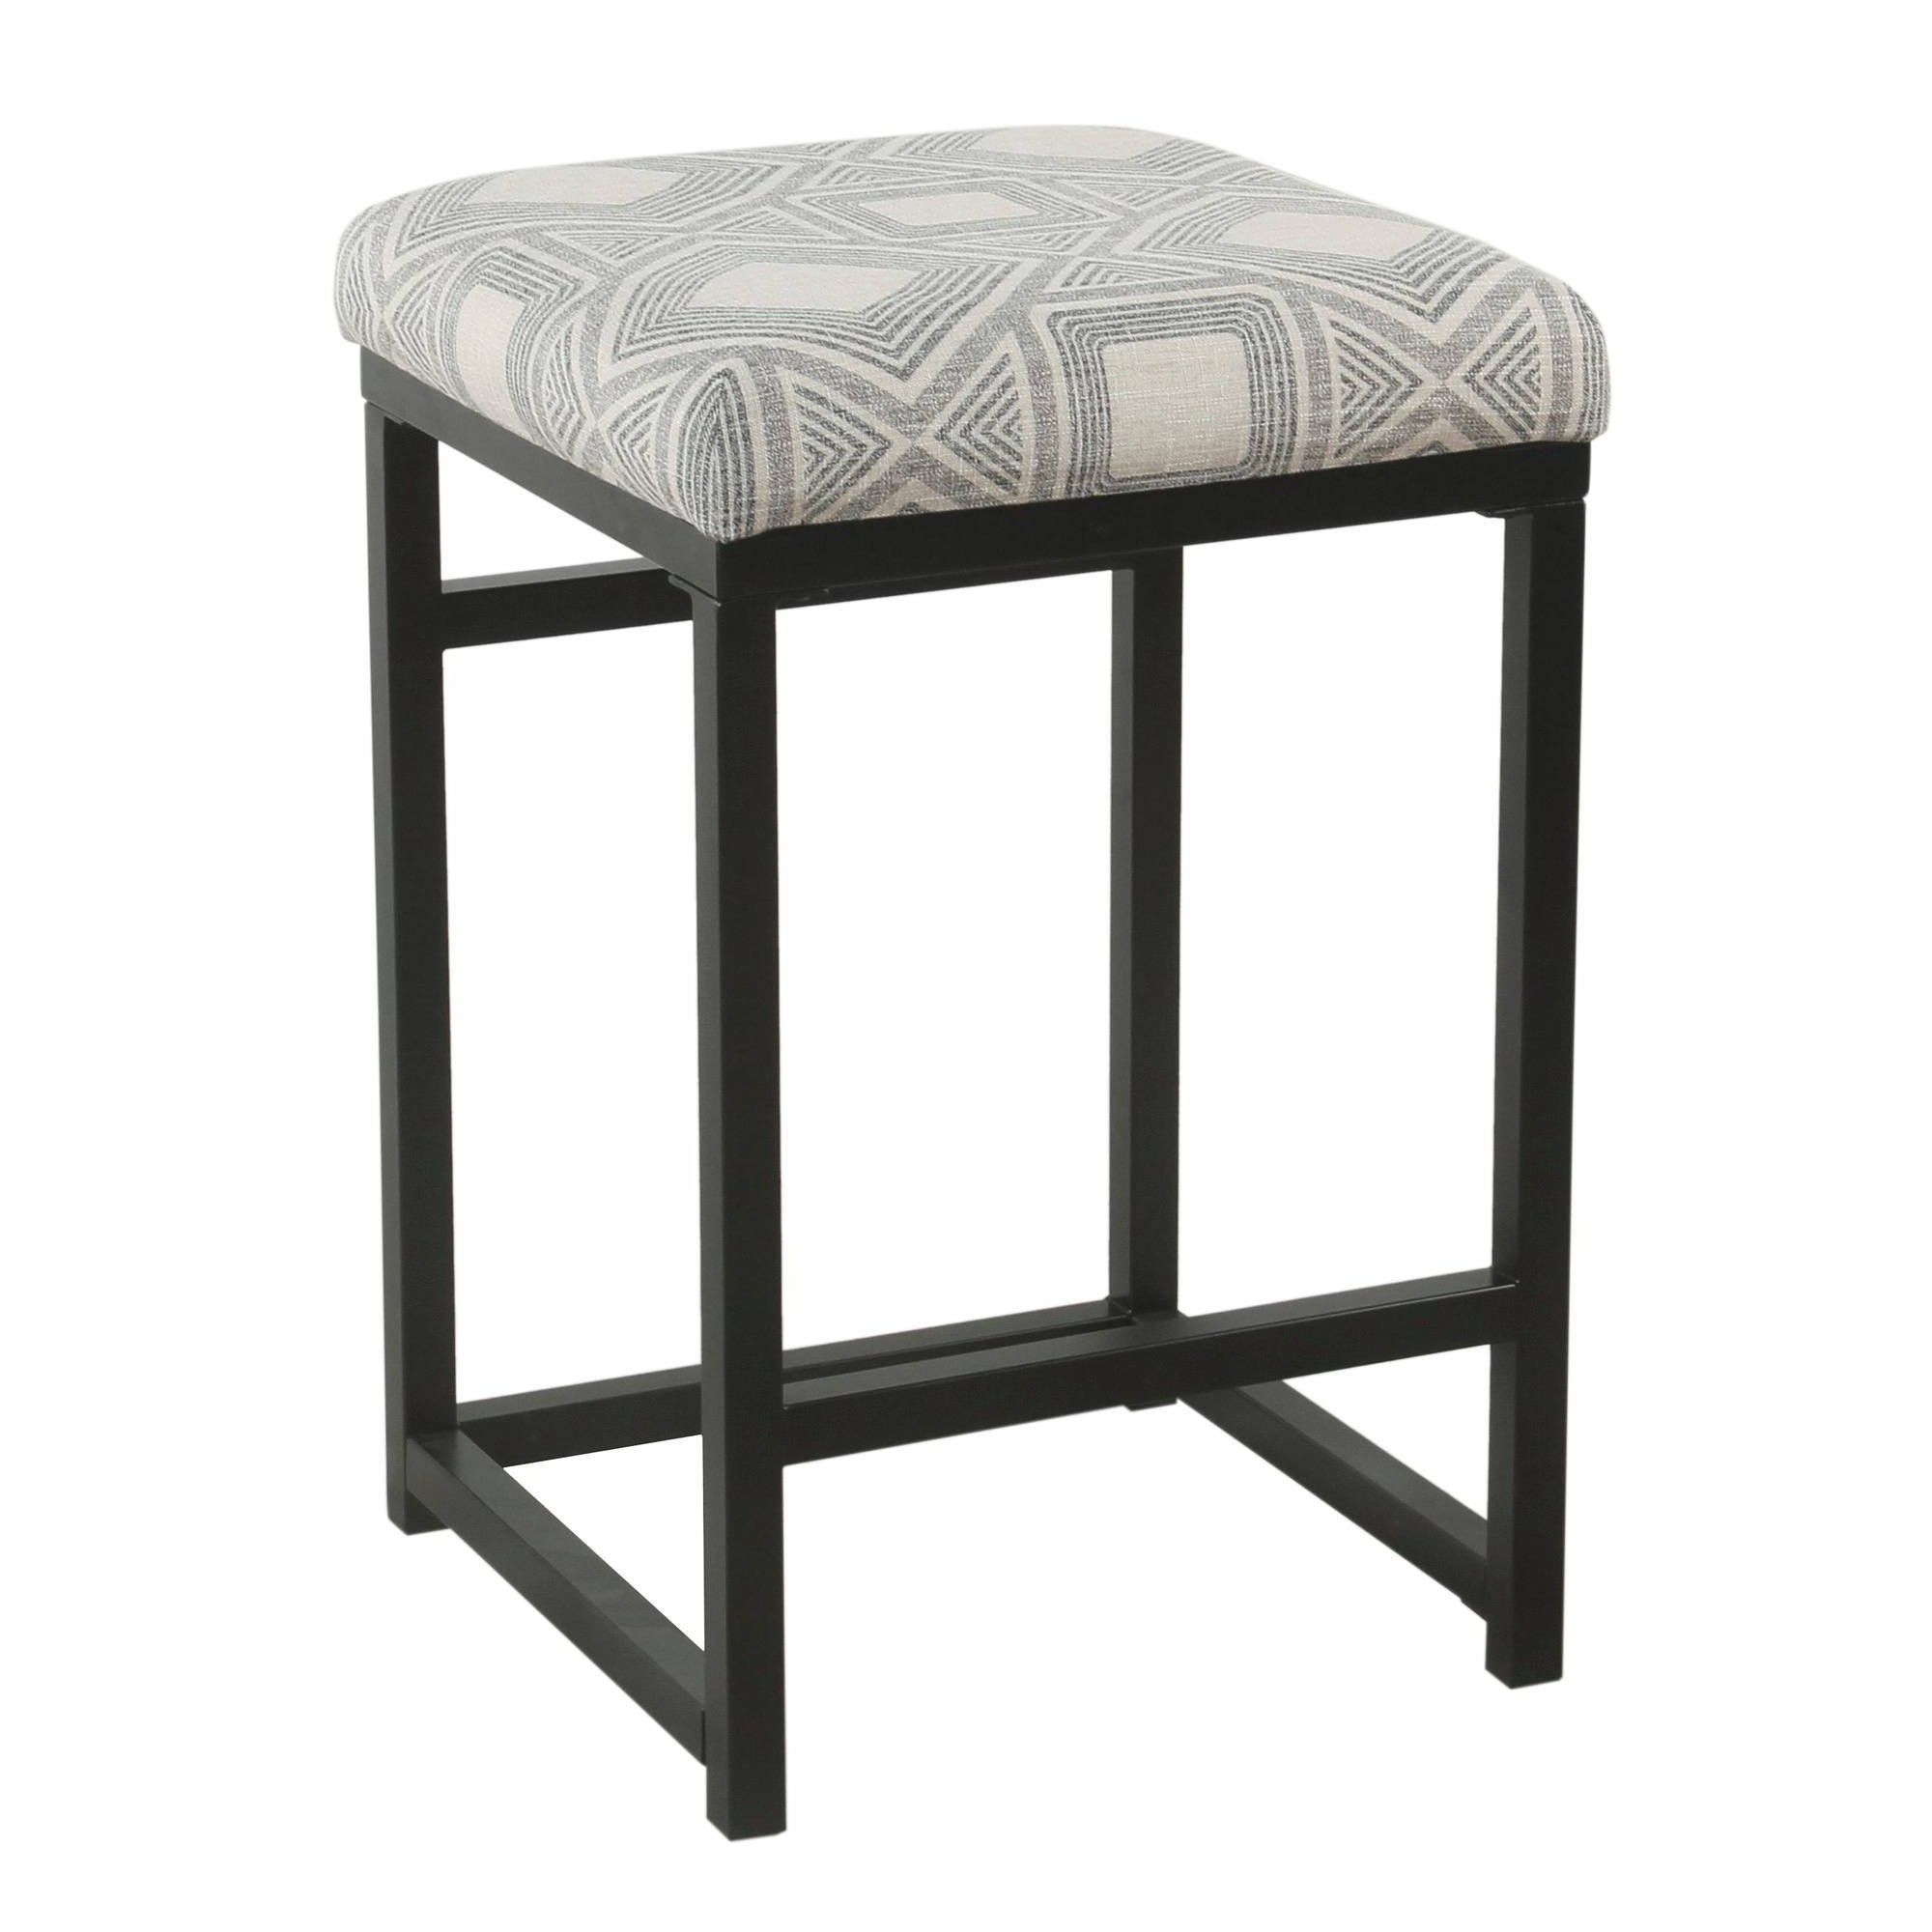 Metal Counter Stool With Geometric Pattern Fabric Upholste Seat